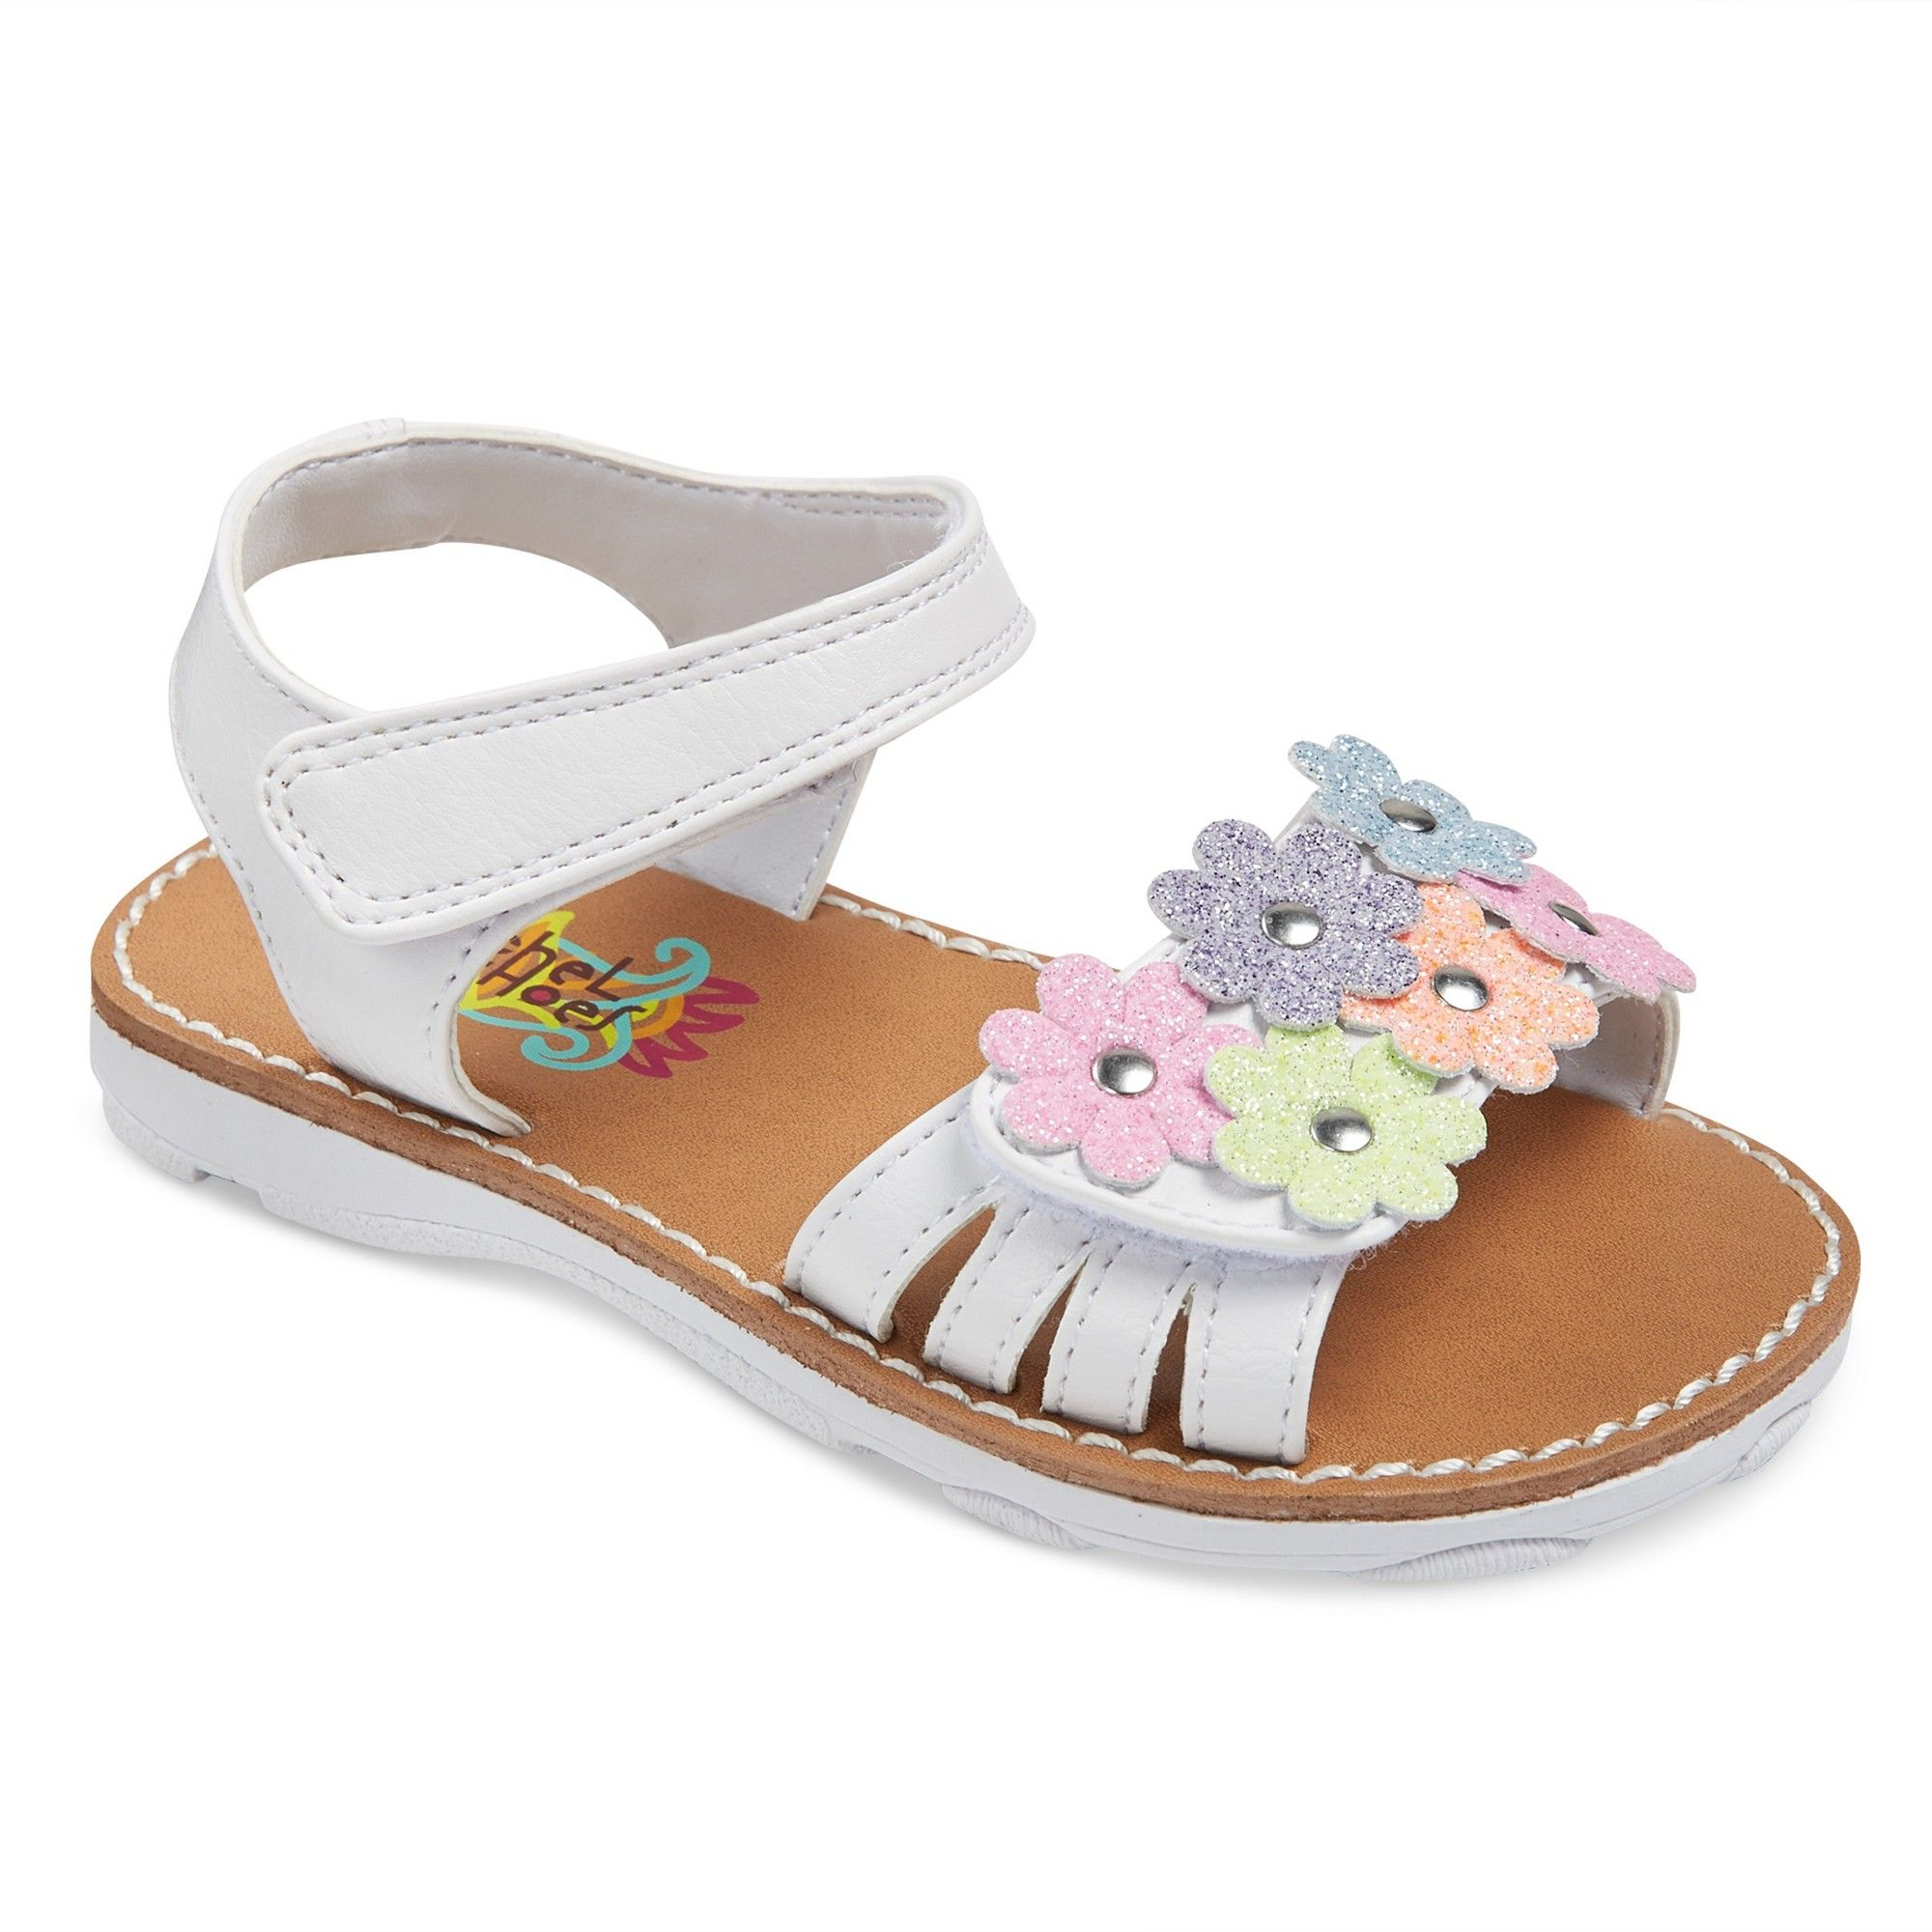 2bf4f1bff2ee Toddler Girls  Rachel Shoes Shea Floral Sandals - White Shimmer 12 ...